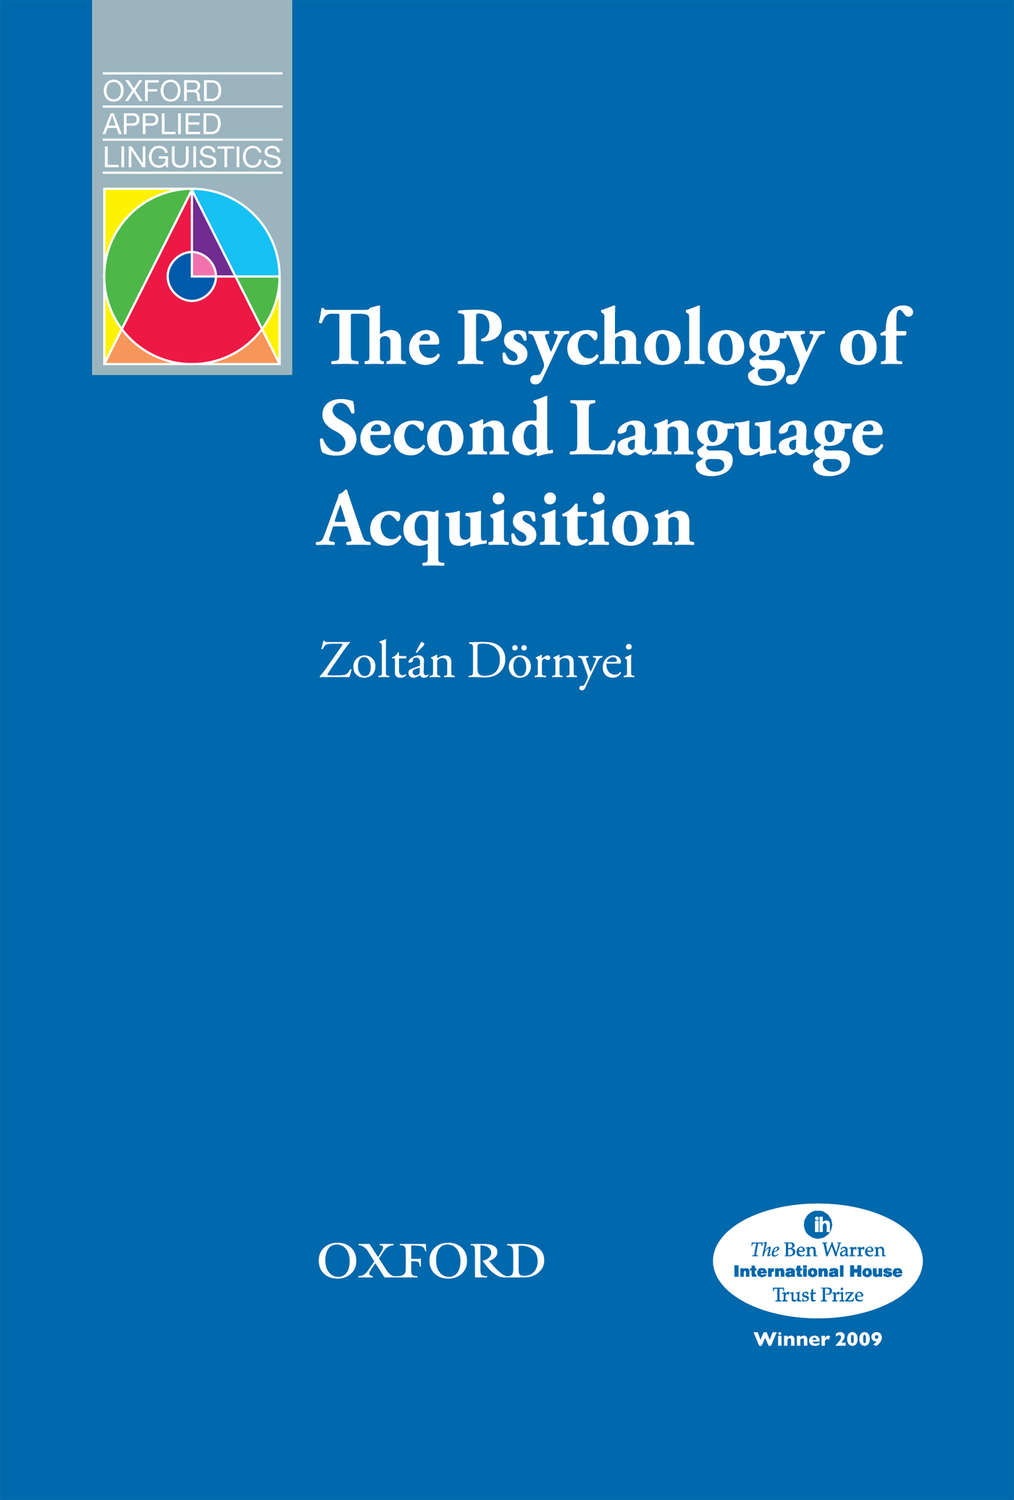 an assignment on the linguistic acquisition 3 10 introduction language is the means we use to convey ideas from one mind to another, and the acquisition of language remains one of the most fascinating aspects of human development.